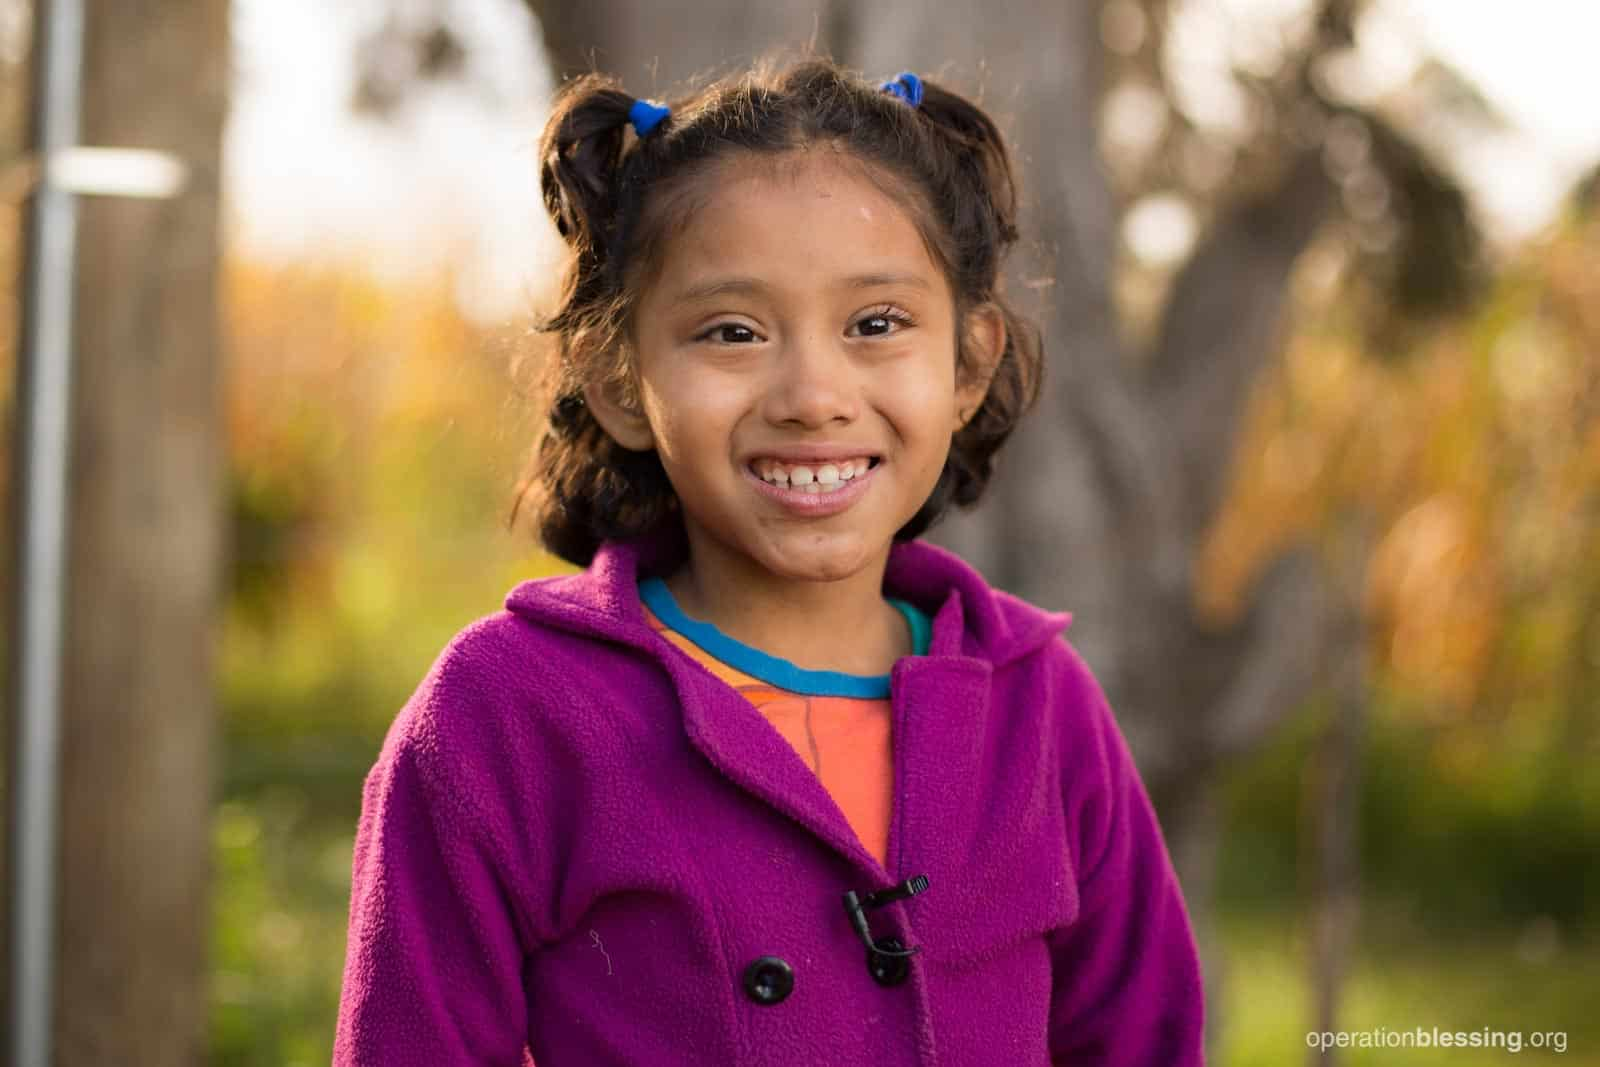 Dulce smiles after her operation provided by Operation Blessing.